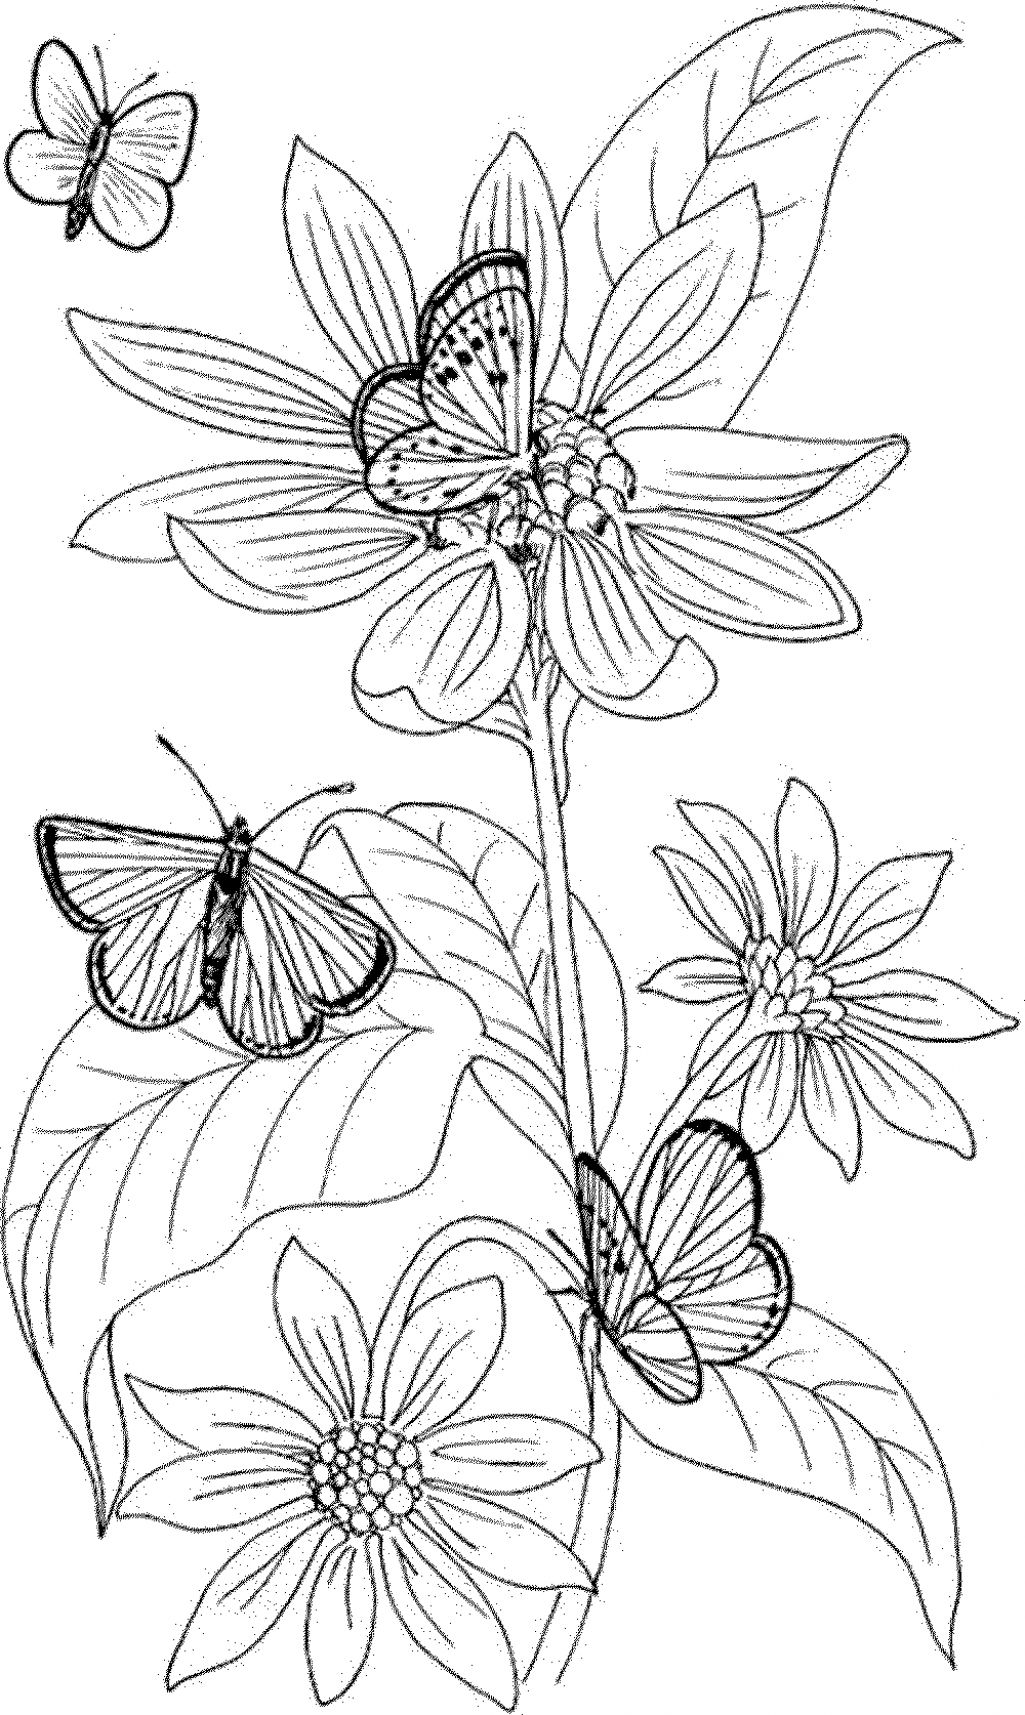 Pansy Flower Coloring Page At Getcolorings